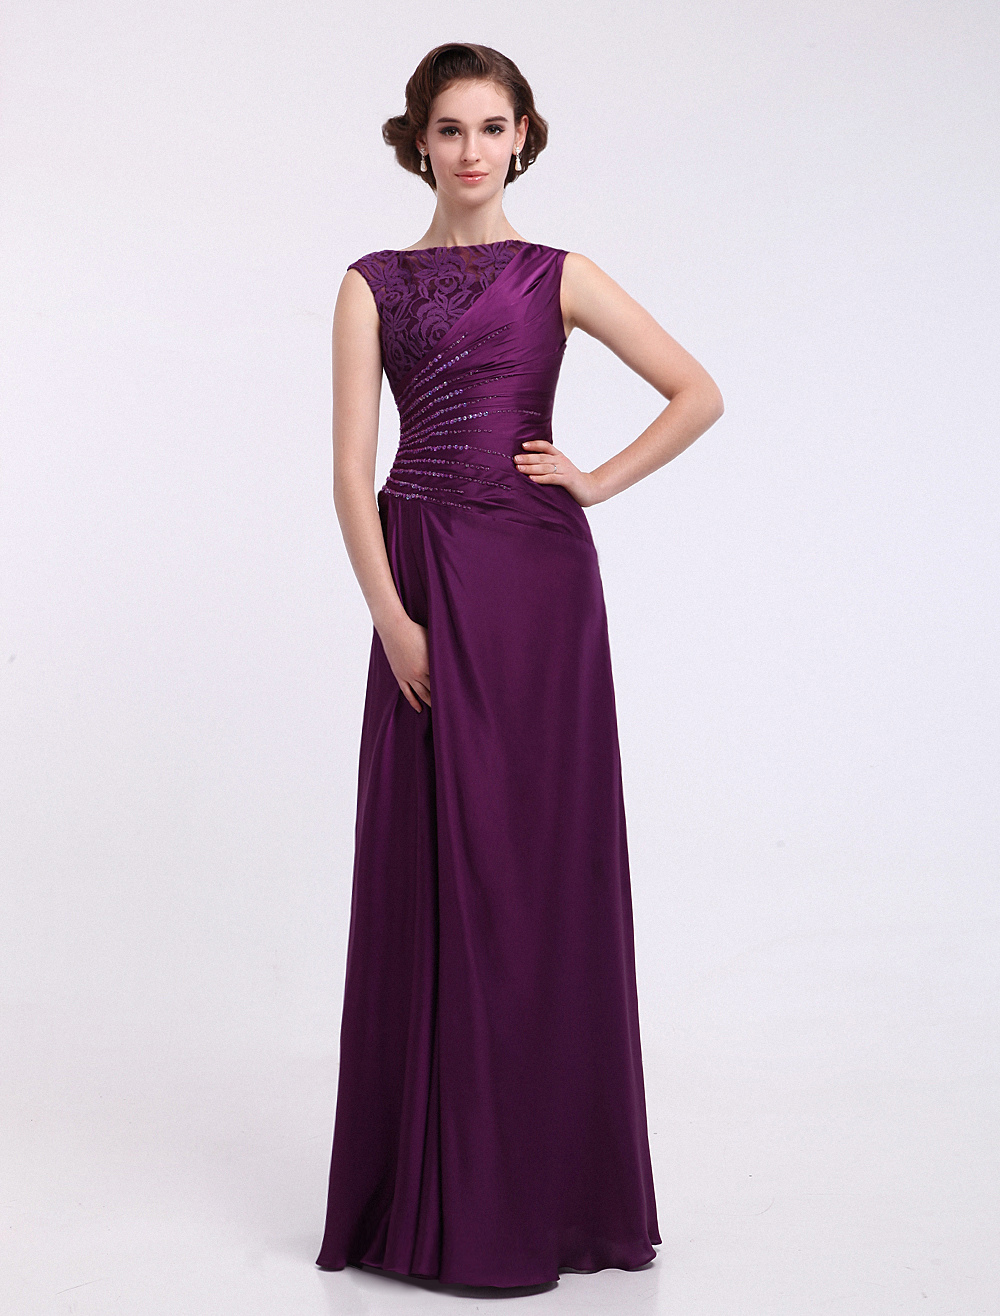 Grape A-line Jewel Neck Ruched Sleeveless Satin Dress For Mother of the Bride  Milanoo